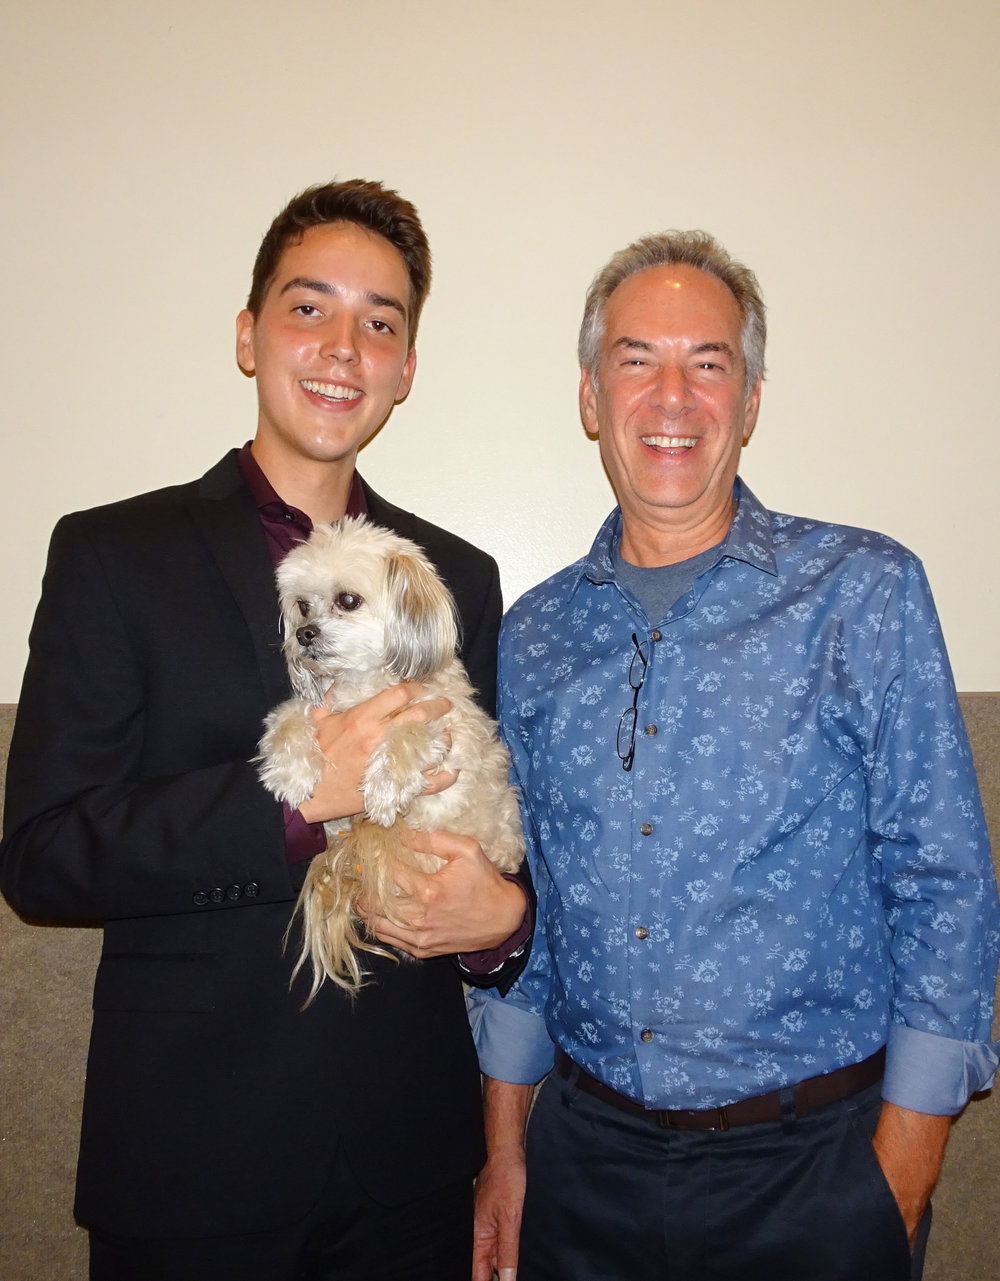 Xavier Jara, with Stephen Aron and photographer, Martha Bihari's dog Max.